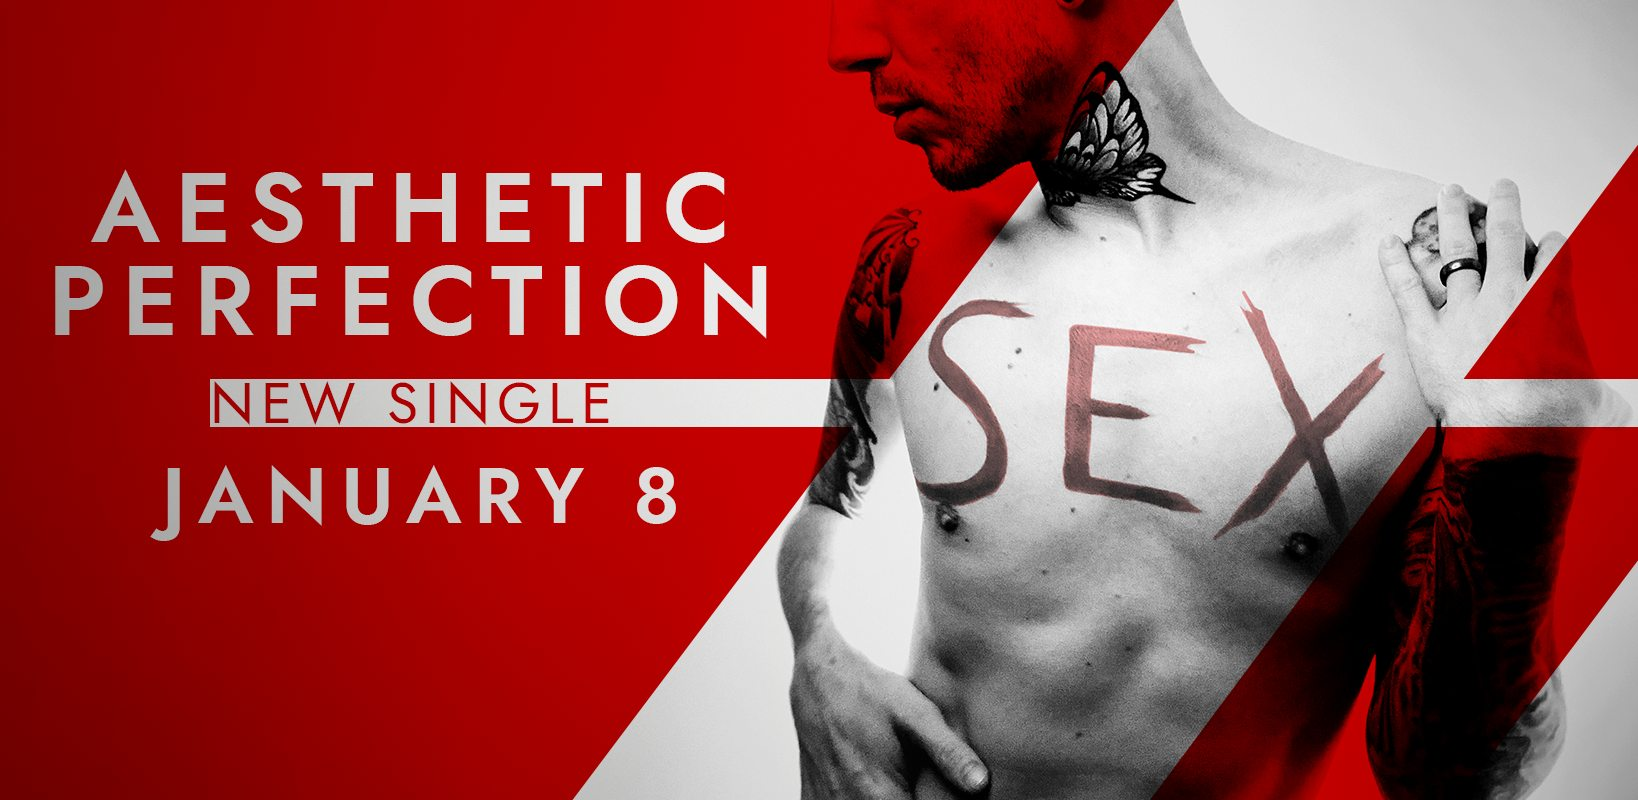 AESTHETIC PERFECTION - erste Single 2021: SEX